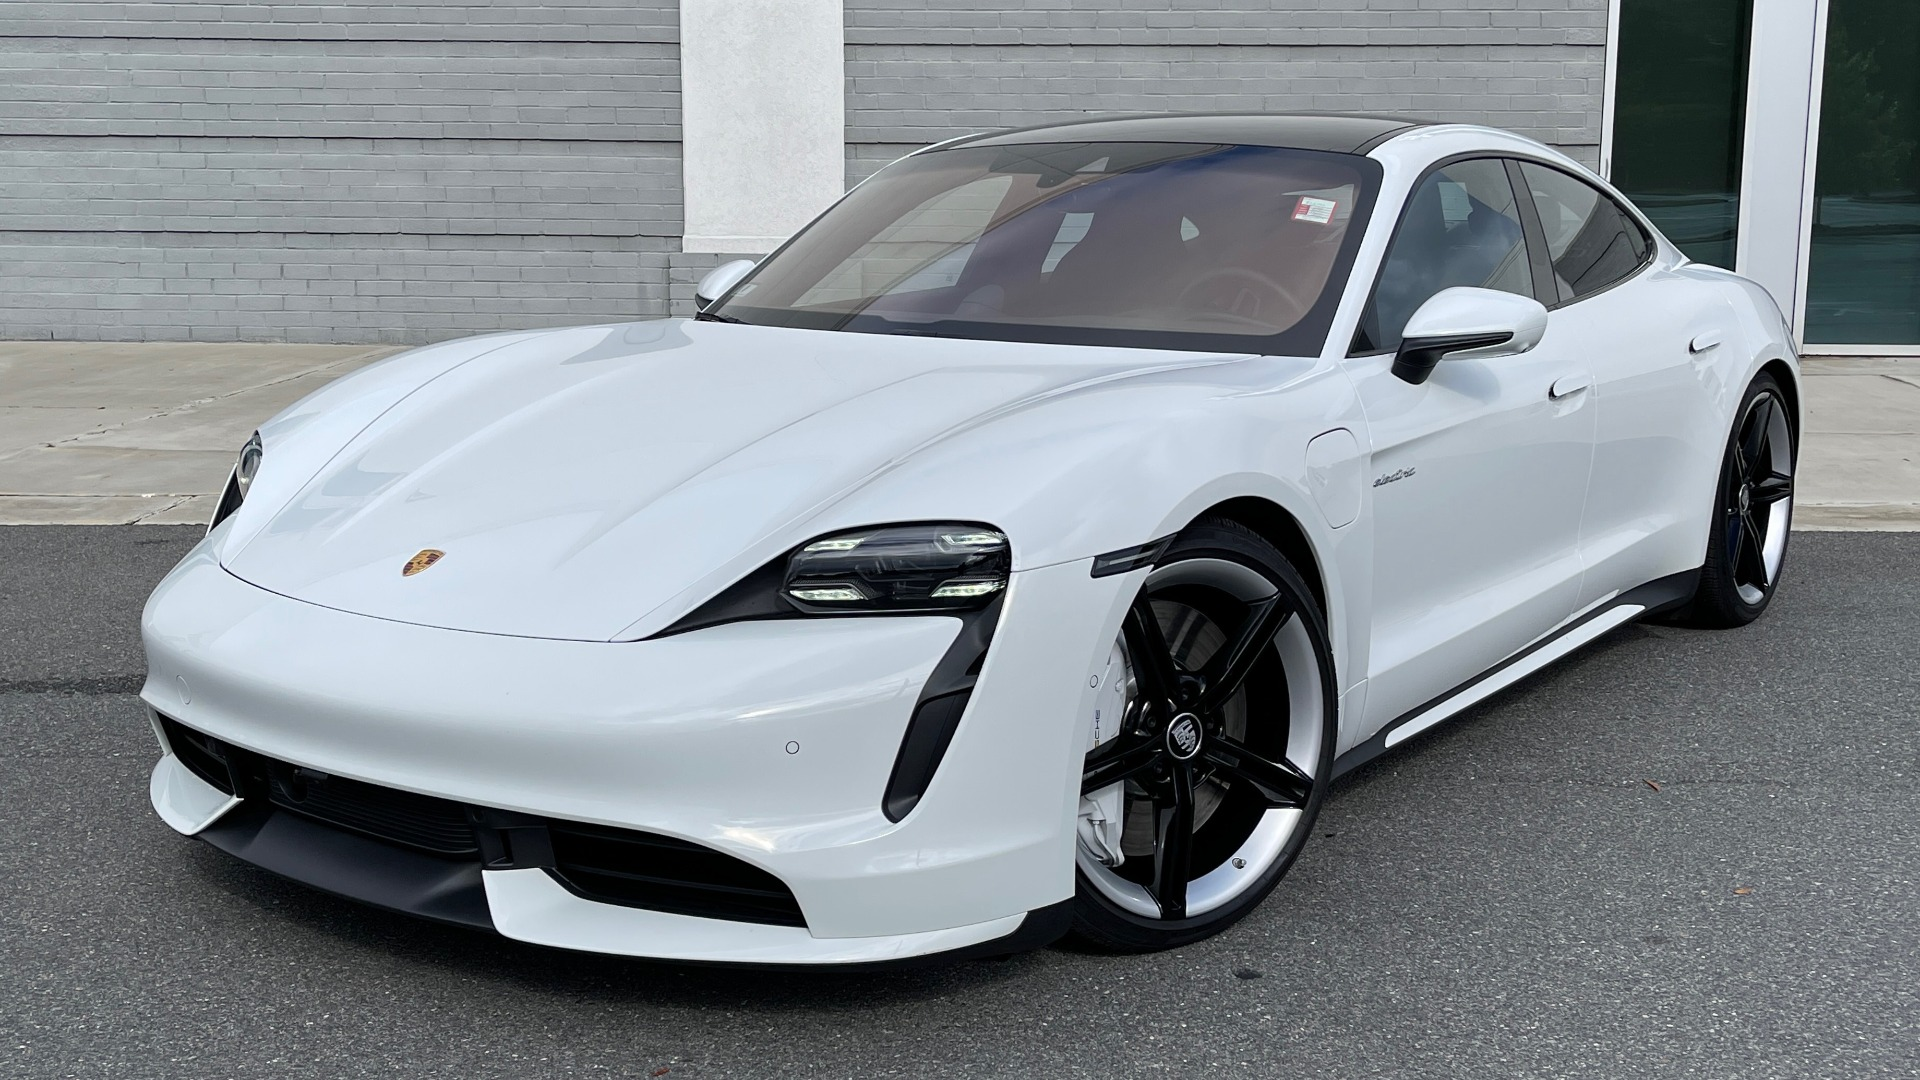 Used 2020 Porsche TAYCAN TURBO SEDAN / AWD / NAV / BOSE / PANO-ROOF / LCA / SURROUND VIEW for sale $162,995 at Formula Imports in Charlotte NC 28227 1